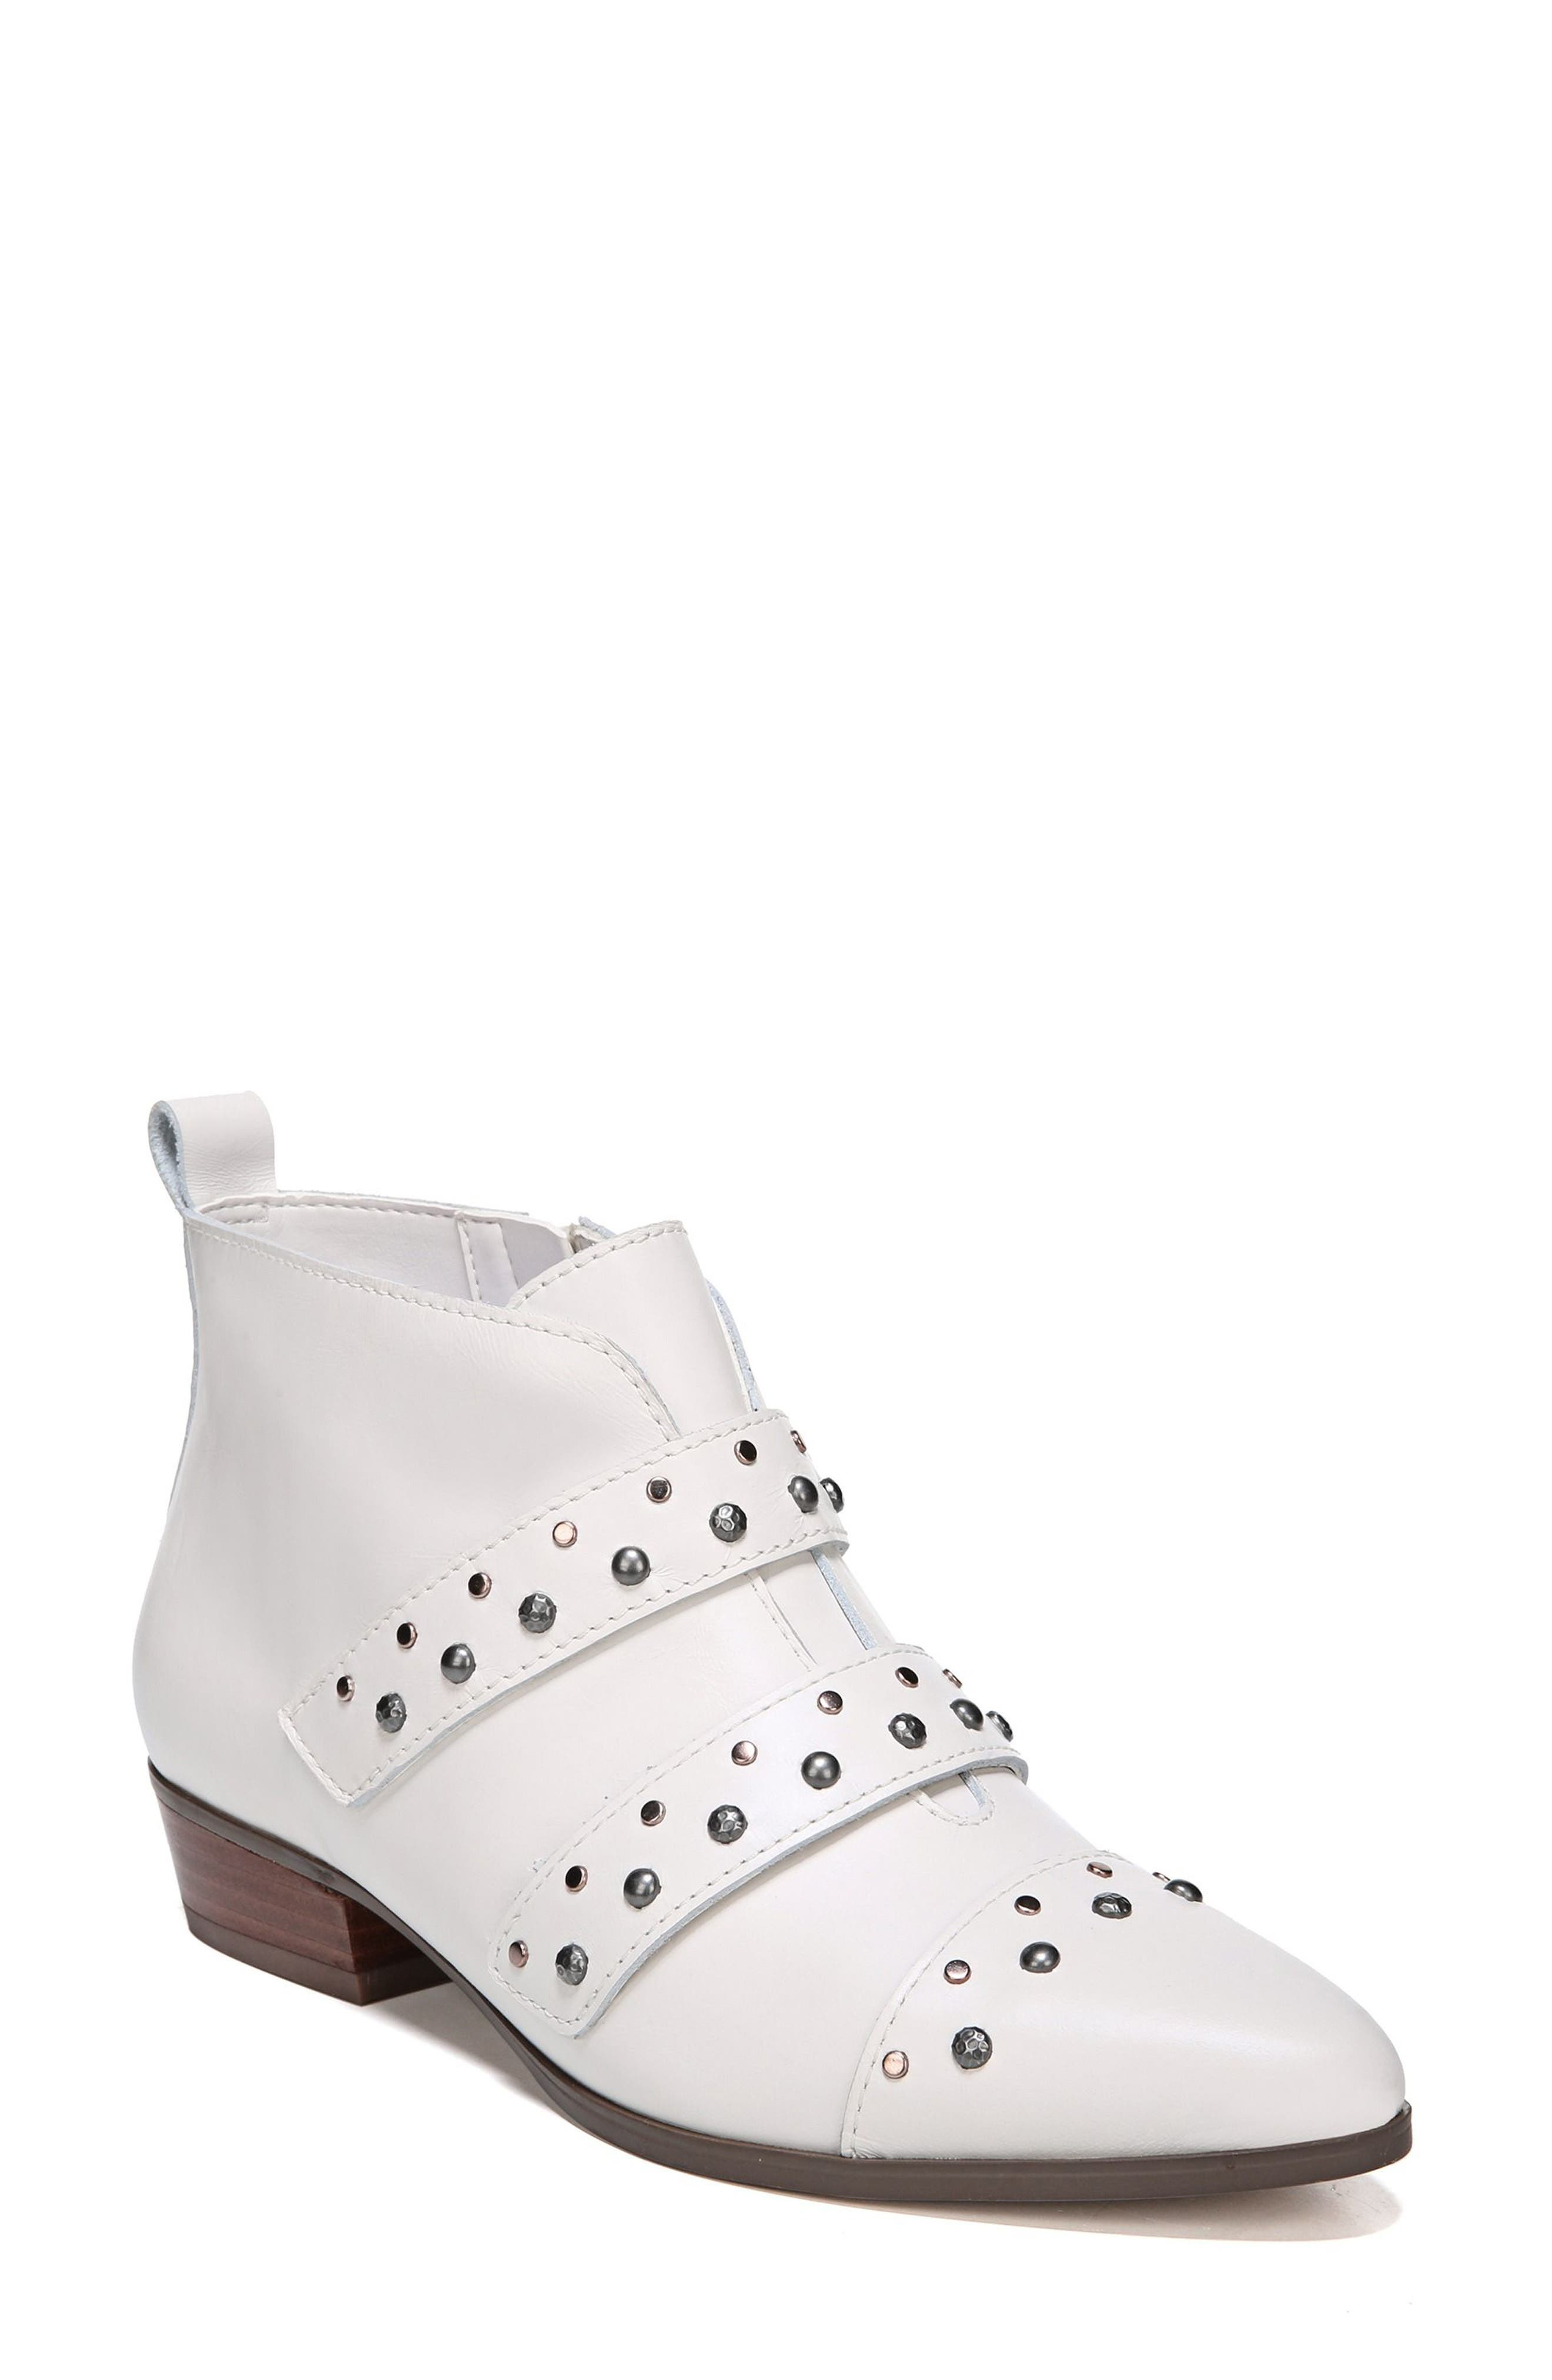 Naturalizer Blissful Studded Bootie, White